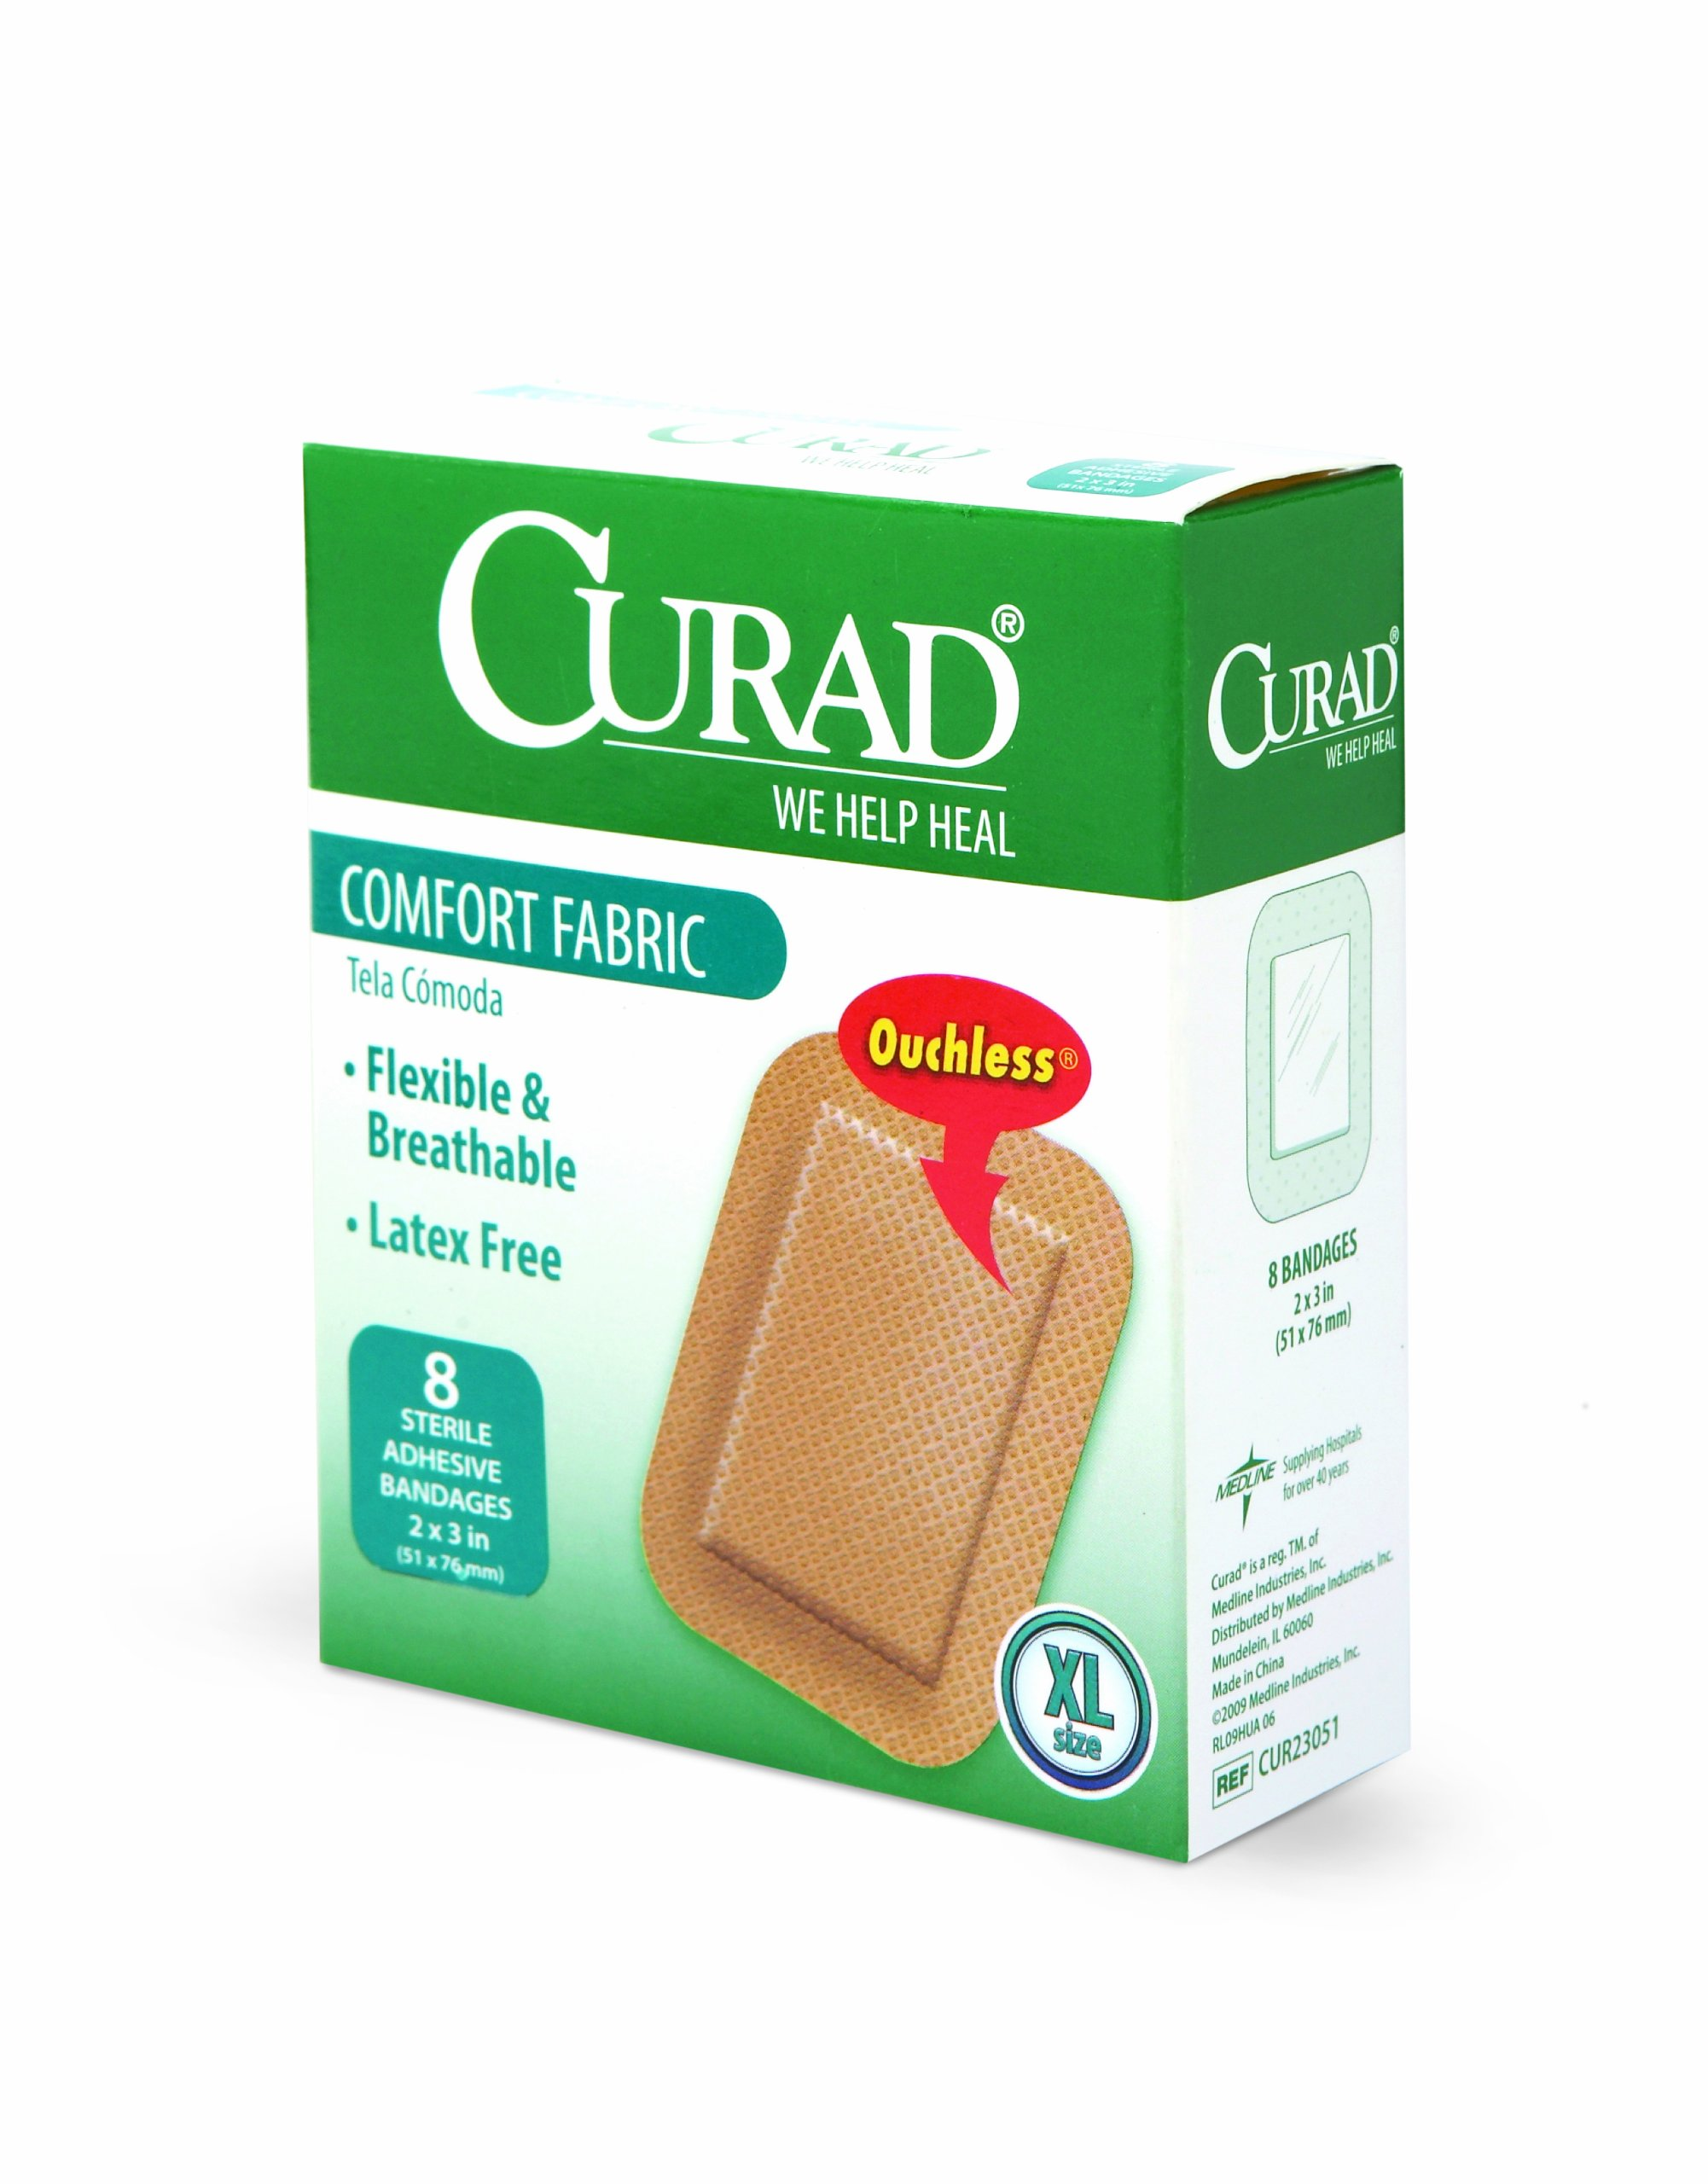 Curad Extra Large Comfort Fabric, 2 Inches X 3 Inches (Pack of 4)